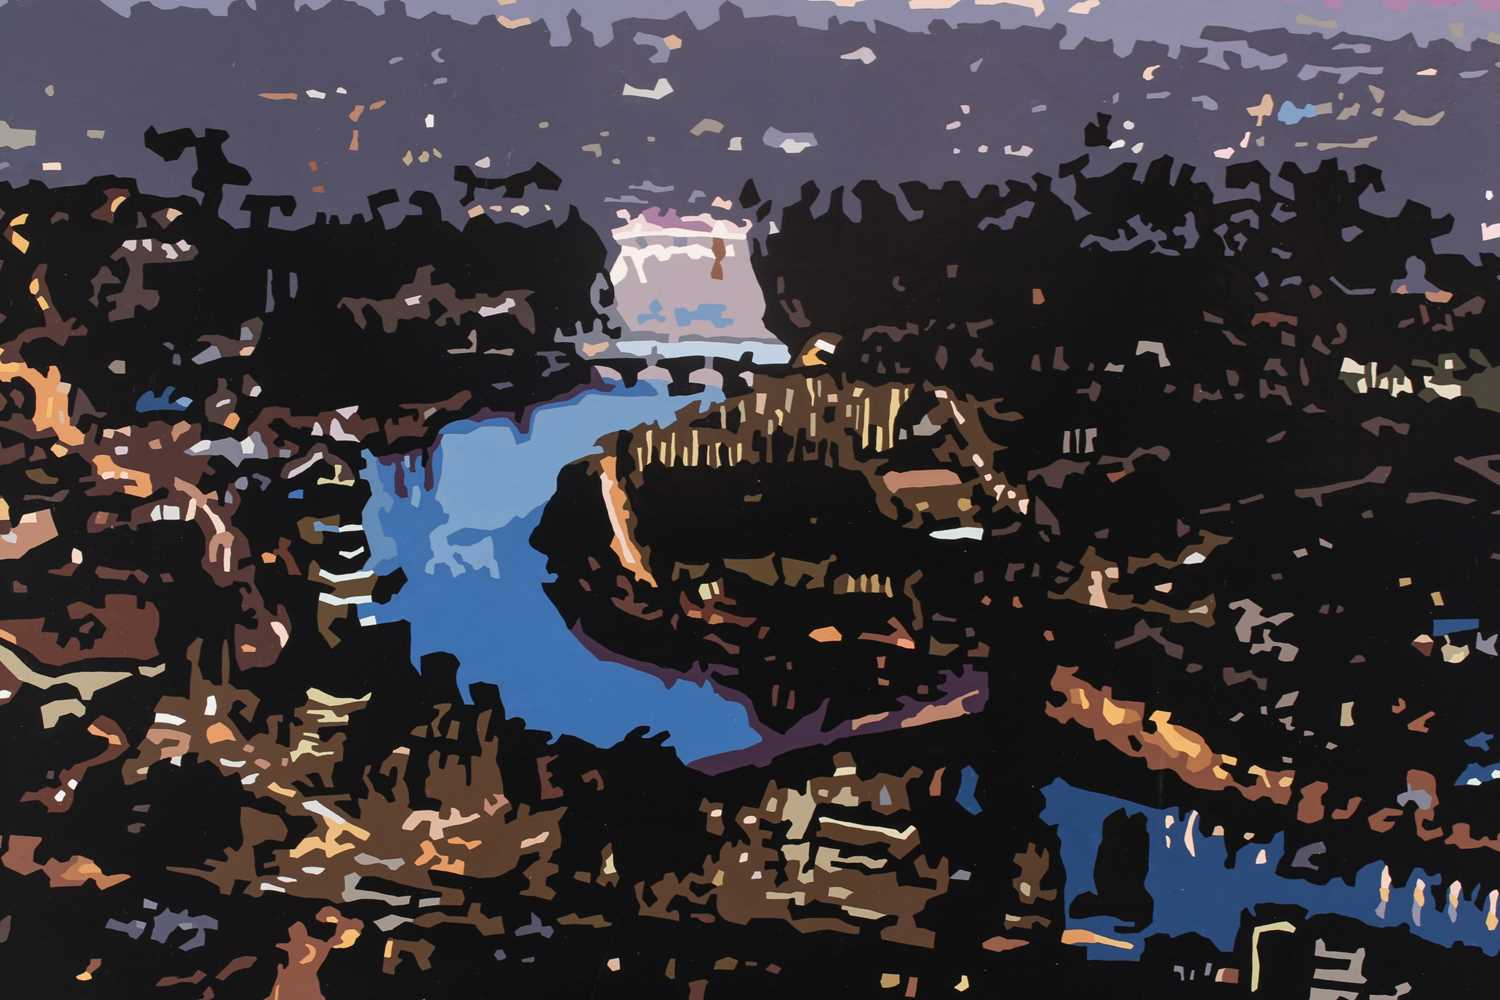 Alicia Dubnyckyj, The River II, London, gloss paint on board, signed and titled verso, 60 cm x 75 - Image 3 of 4